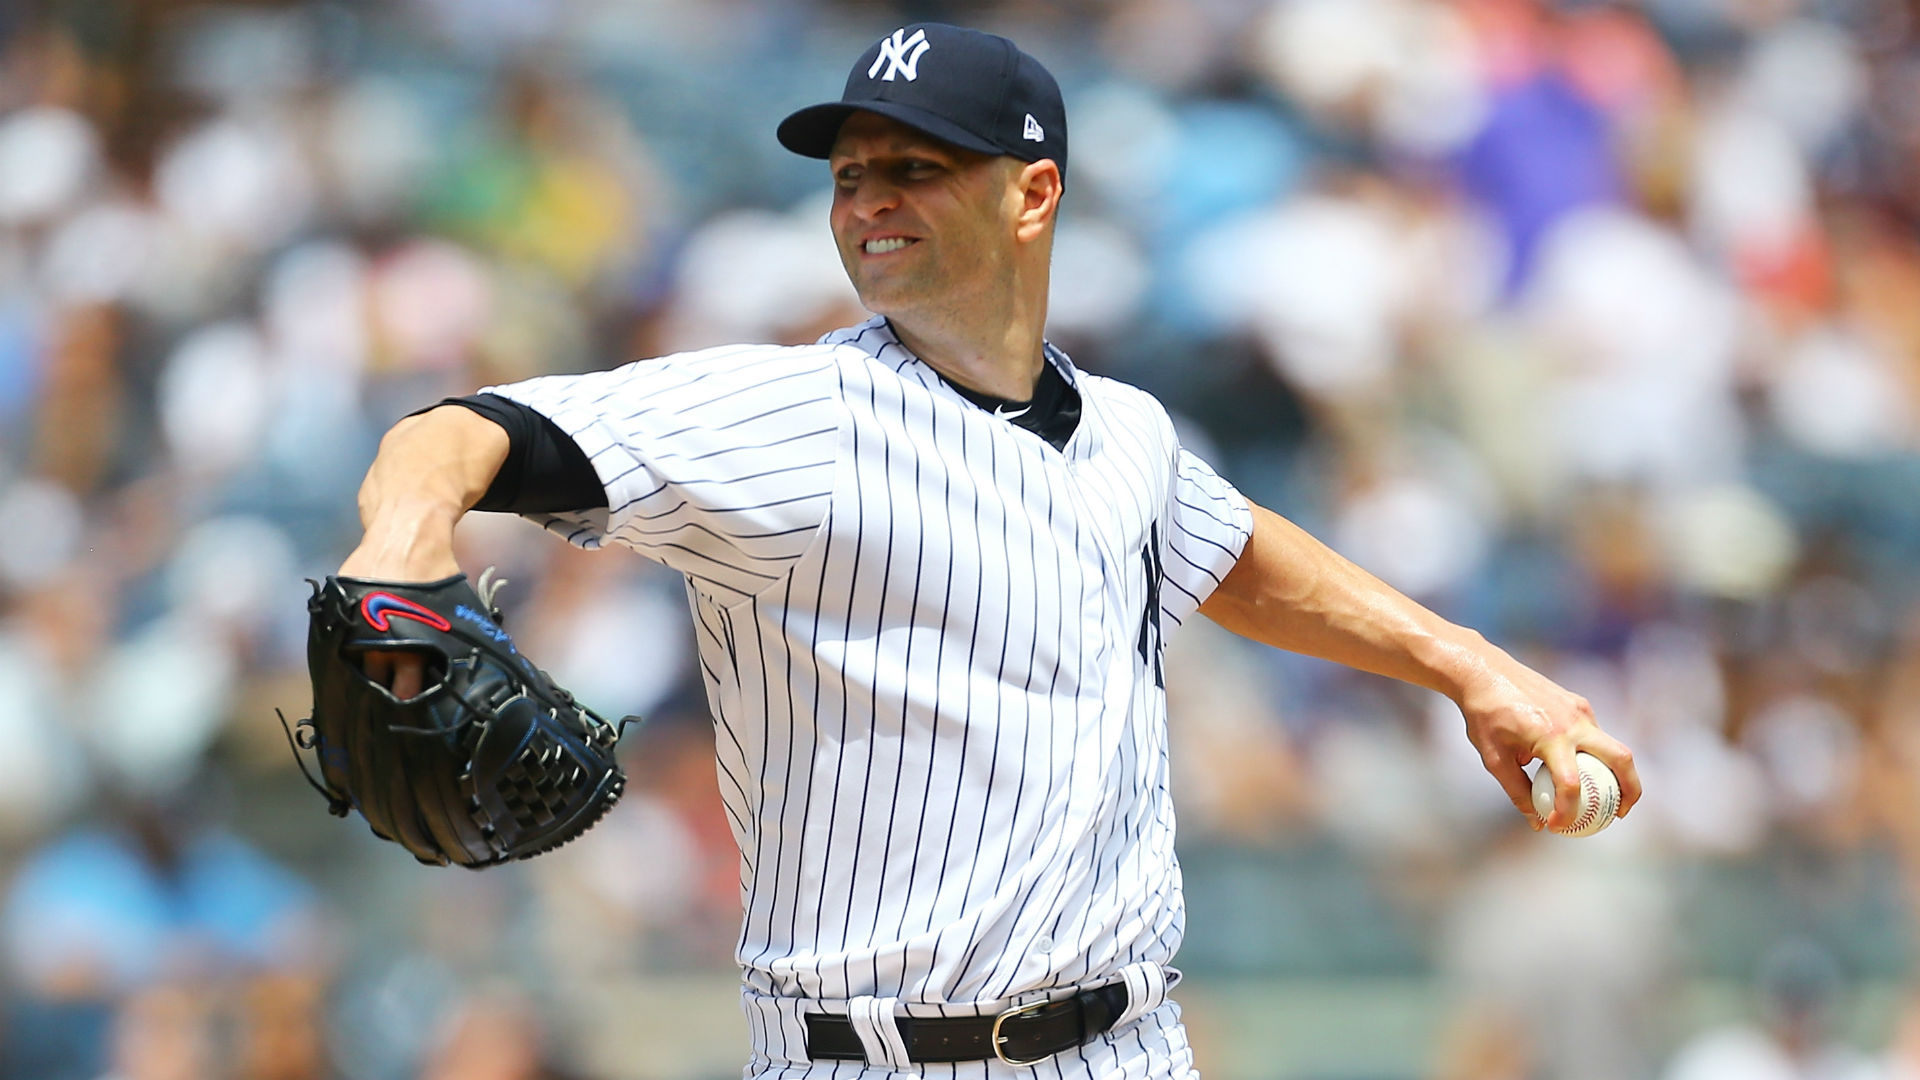 Yankees' J.A. Happ diagnosed with hand, foot and mouth disease